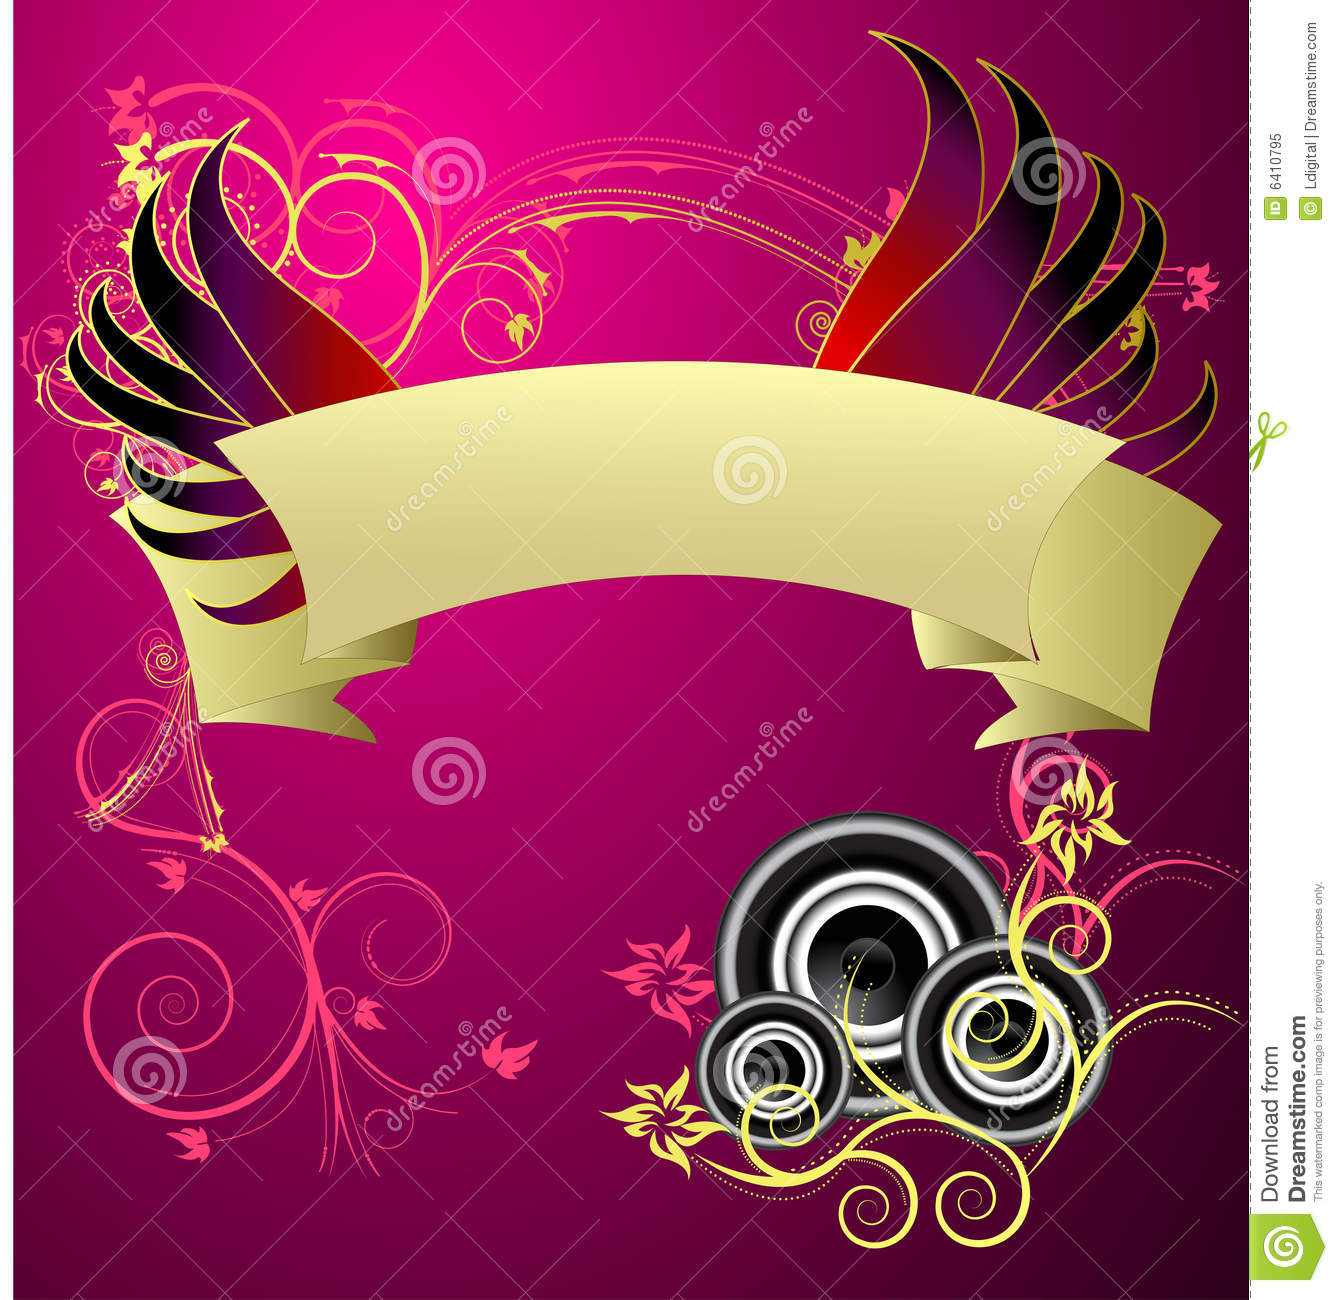 a beauitful musical banner vector design royalty free stock photo